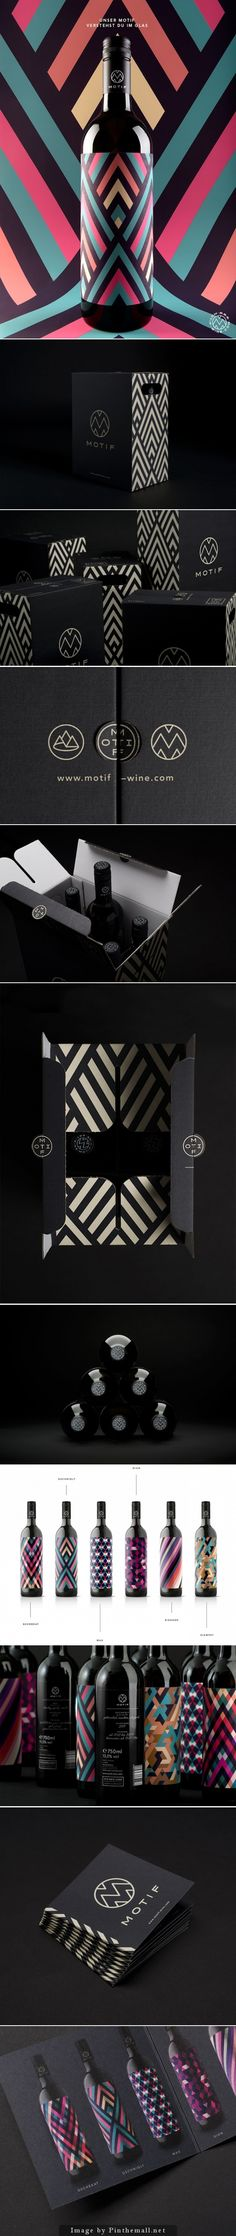 Motif #Wine #packaging #design, Creative Agency: EN GARD - http://www.packagingoftheworld.com/2014/10/motif-wine.html